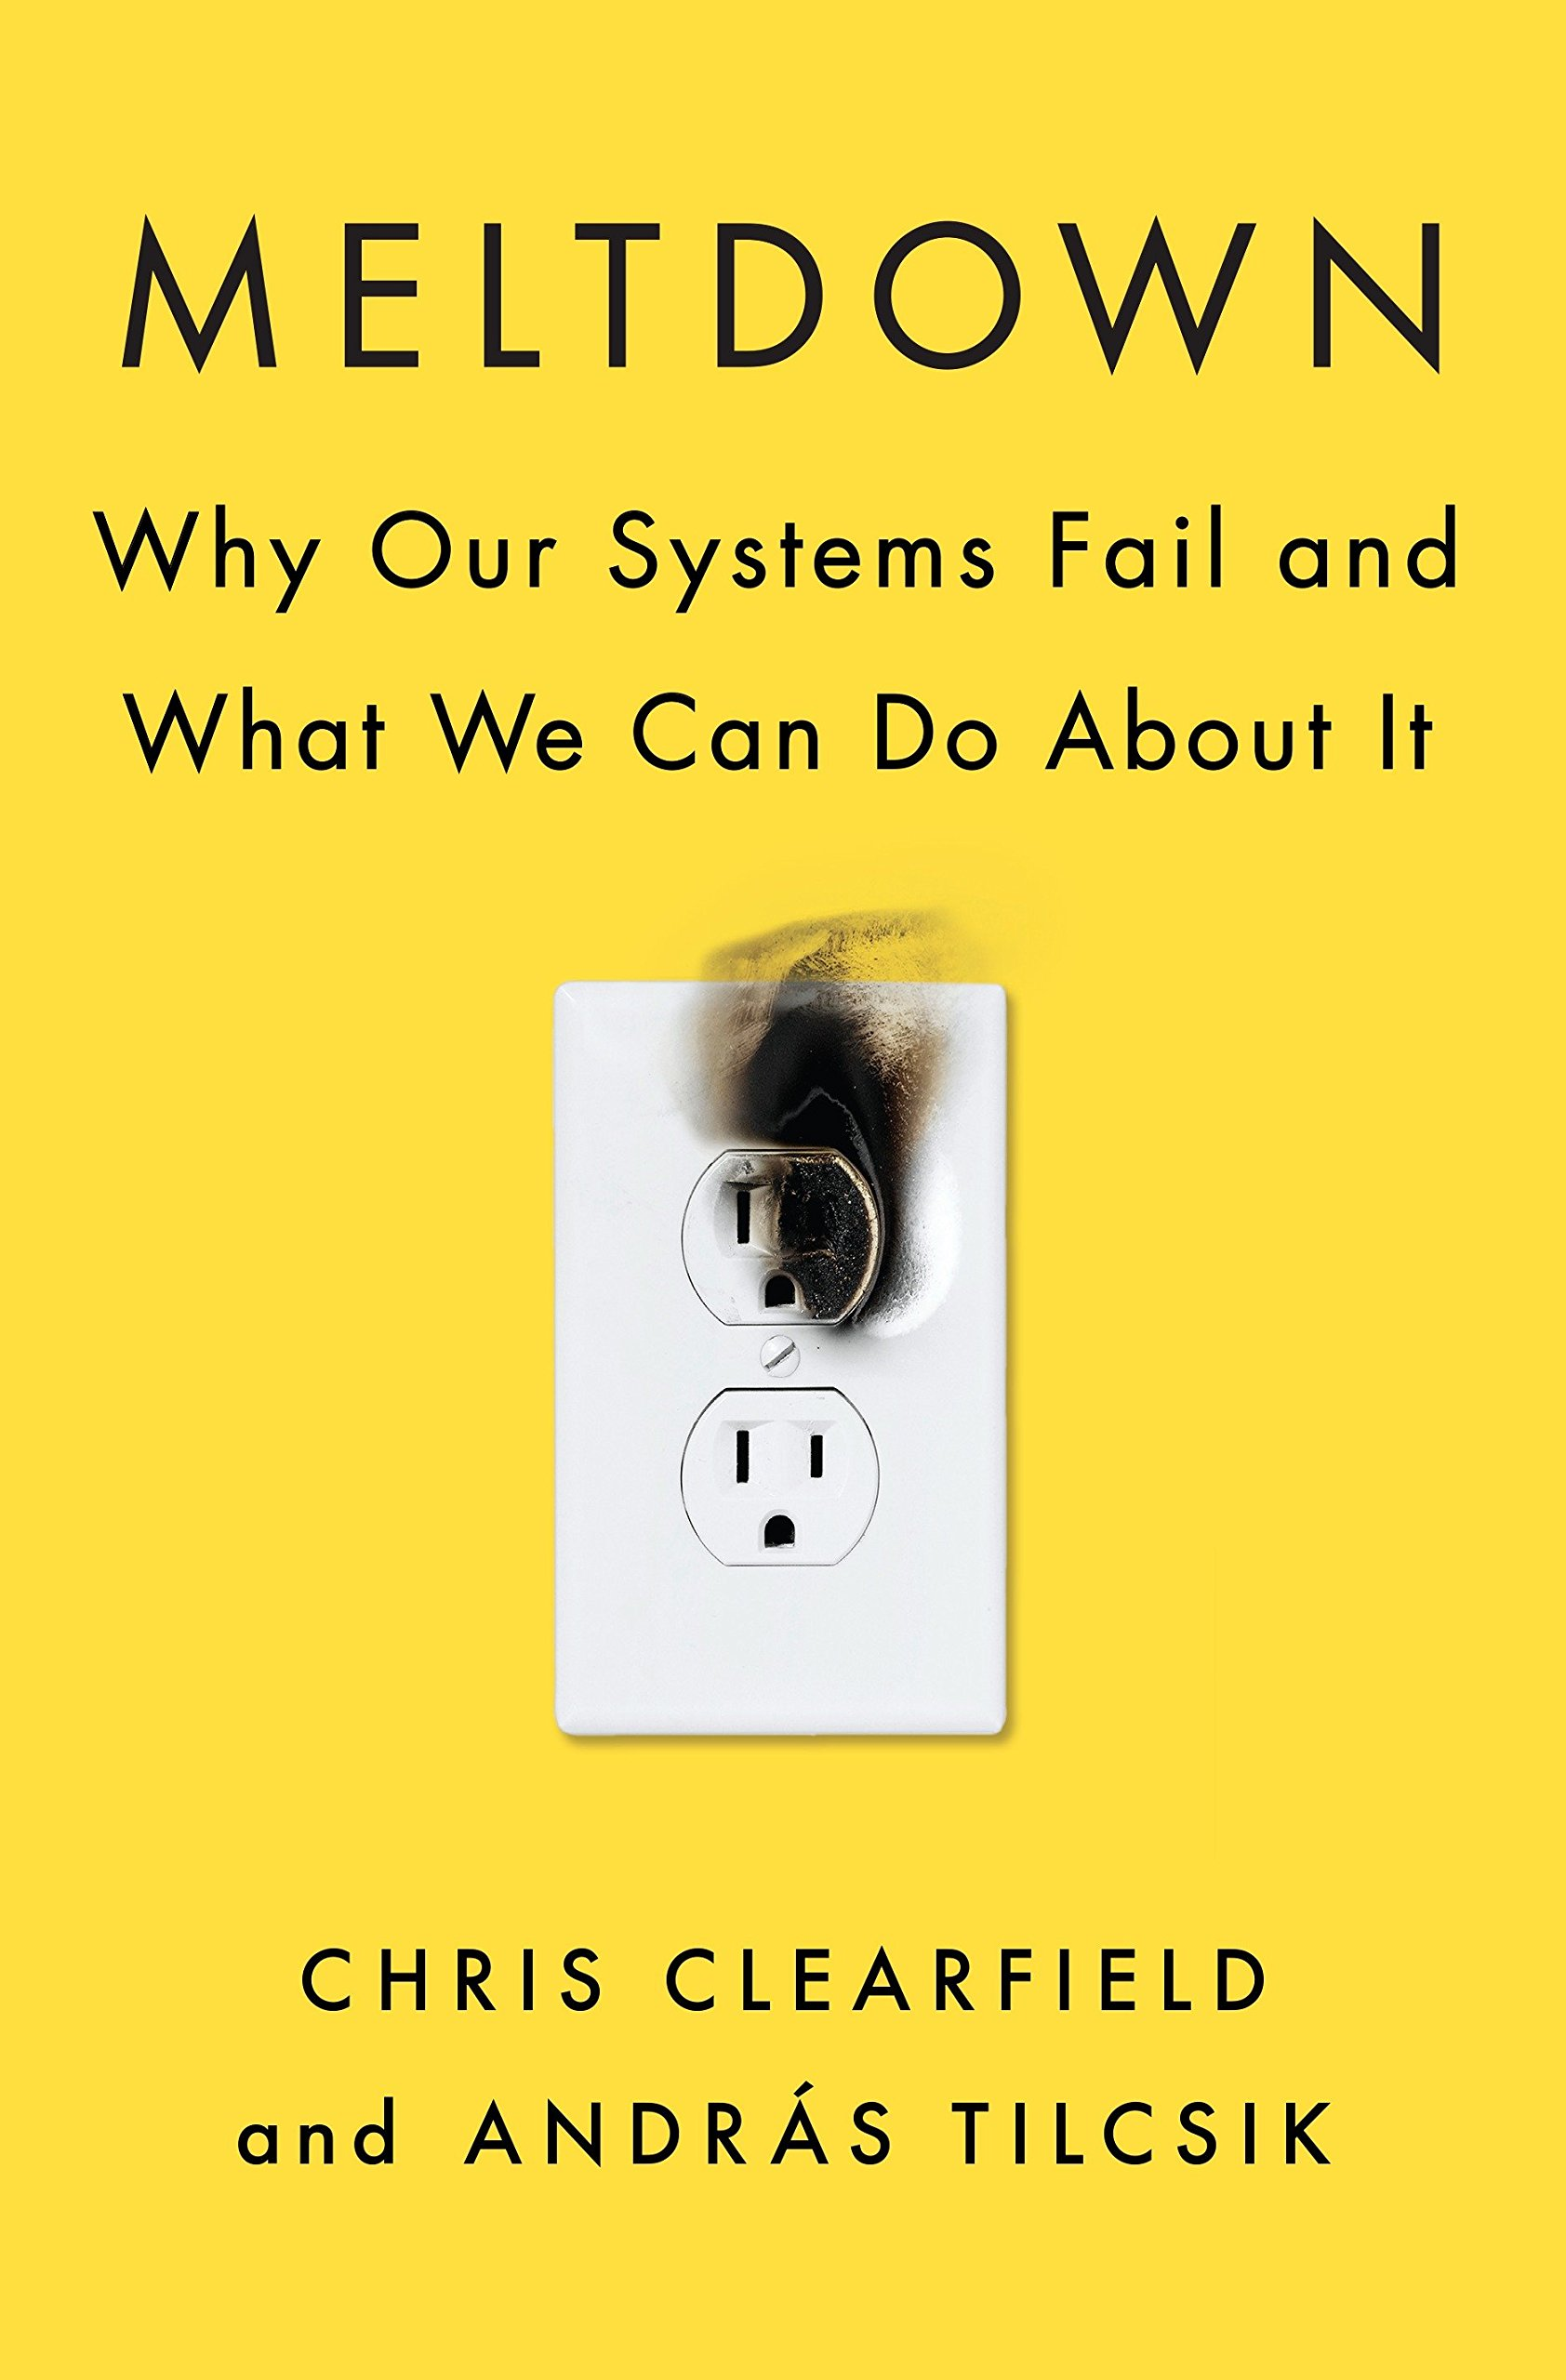 meltdown why our systems fail and what we can do about it chris